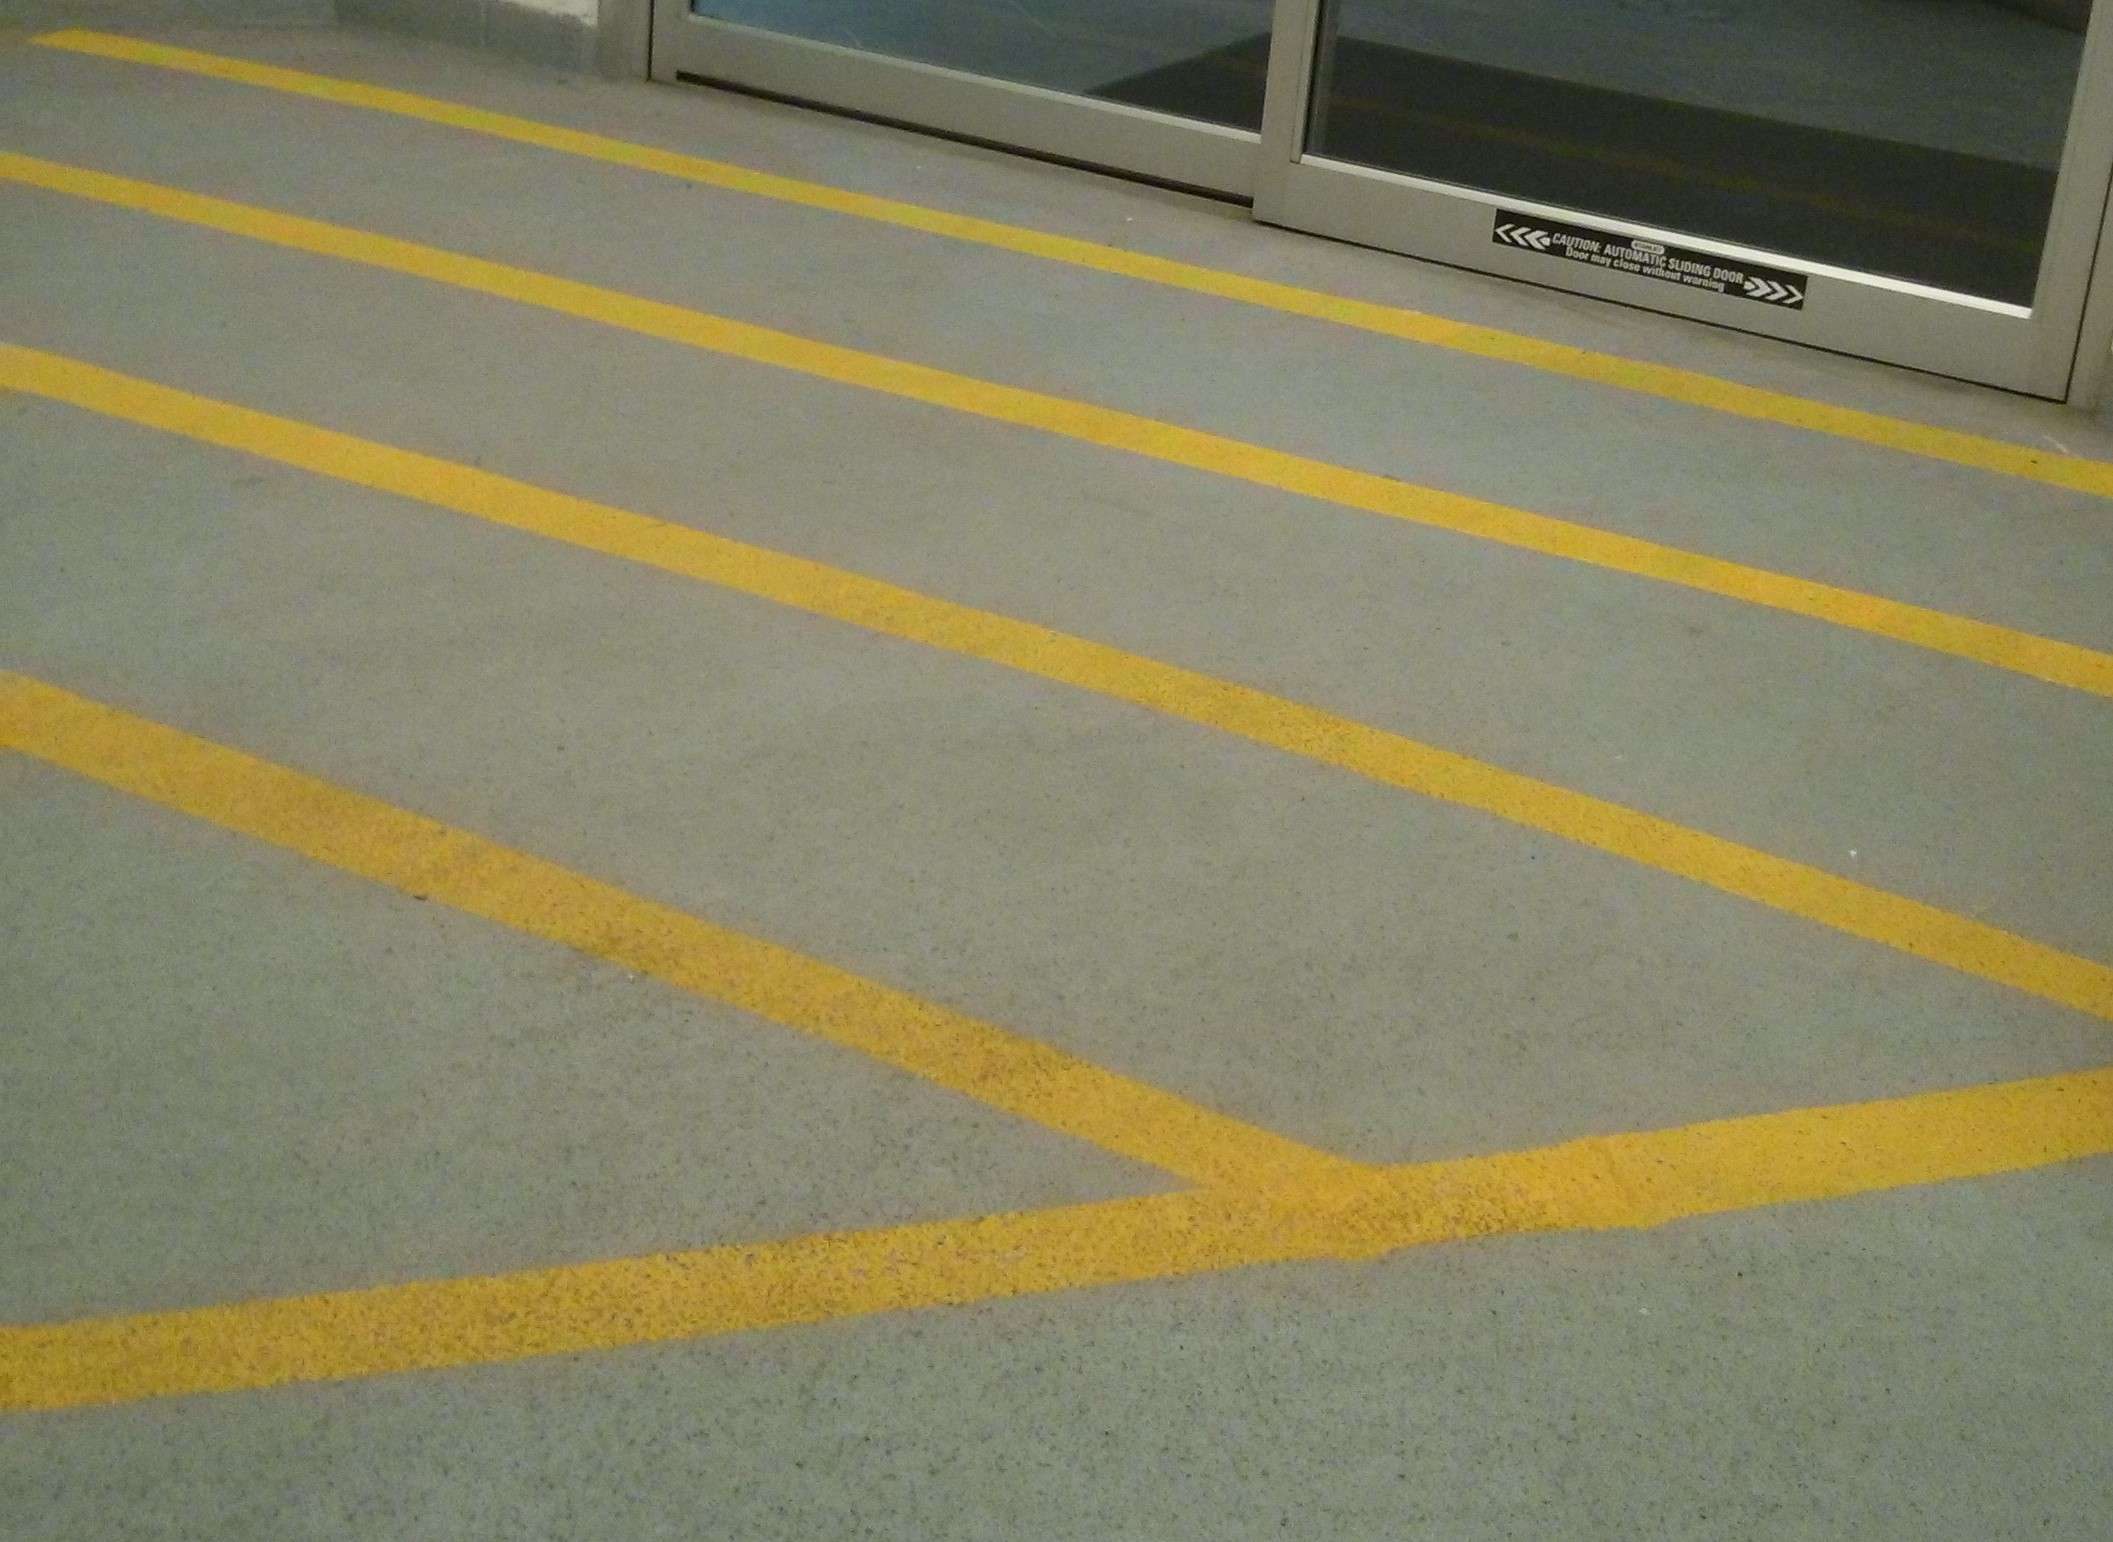 SCRUB N SHINE Anti-Slip Textured garage floor coatings MN